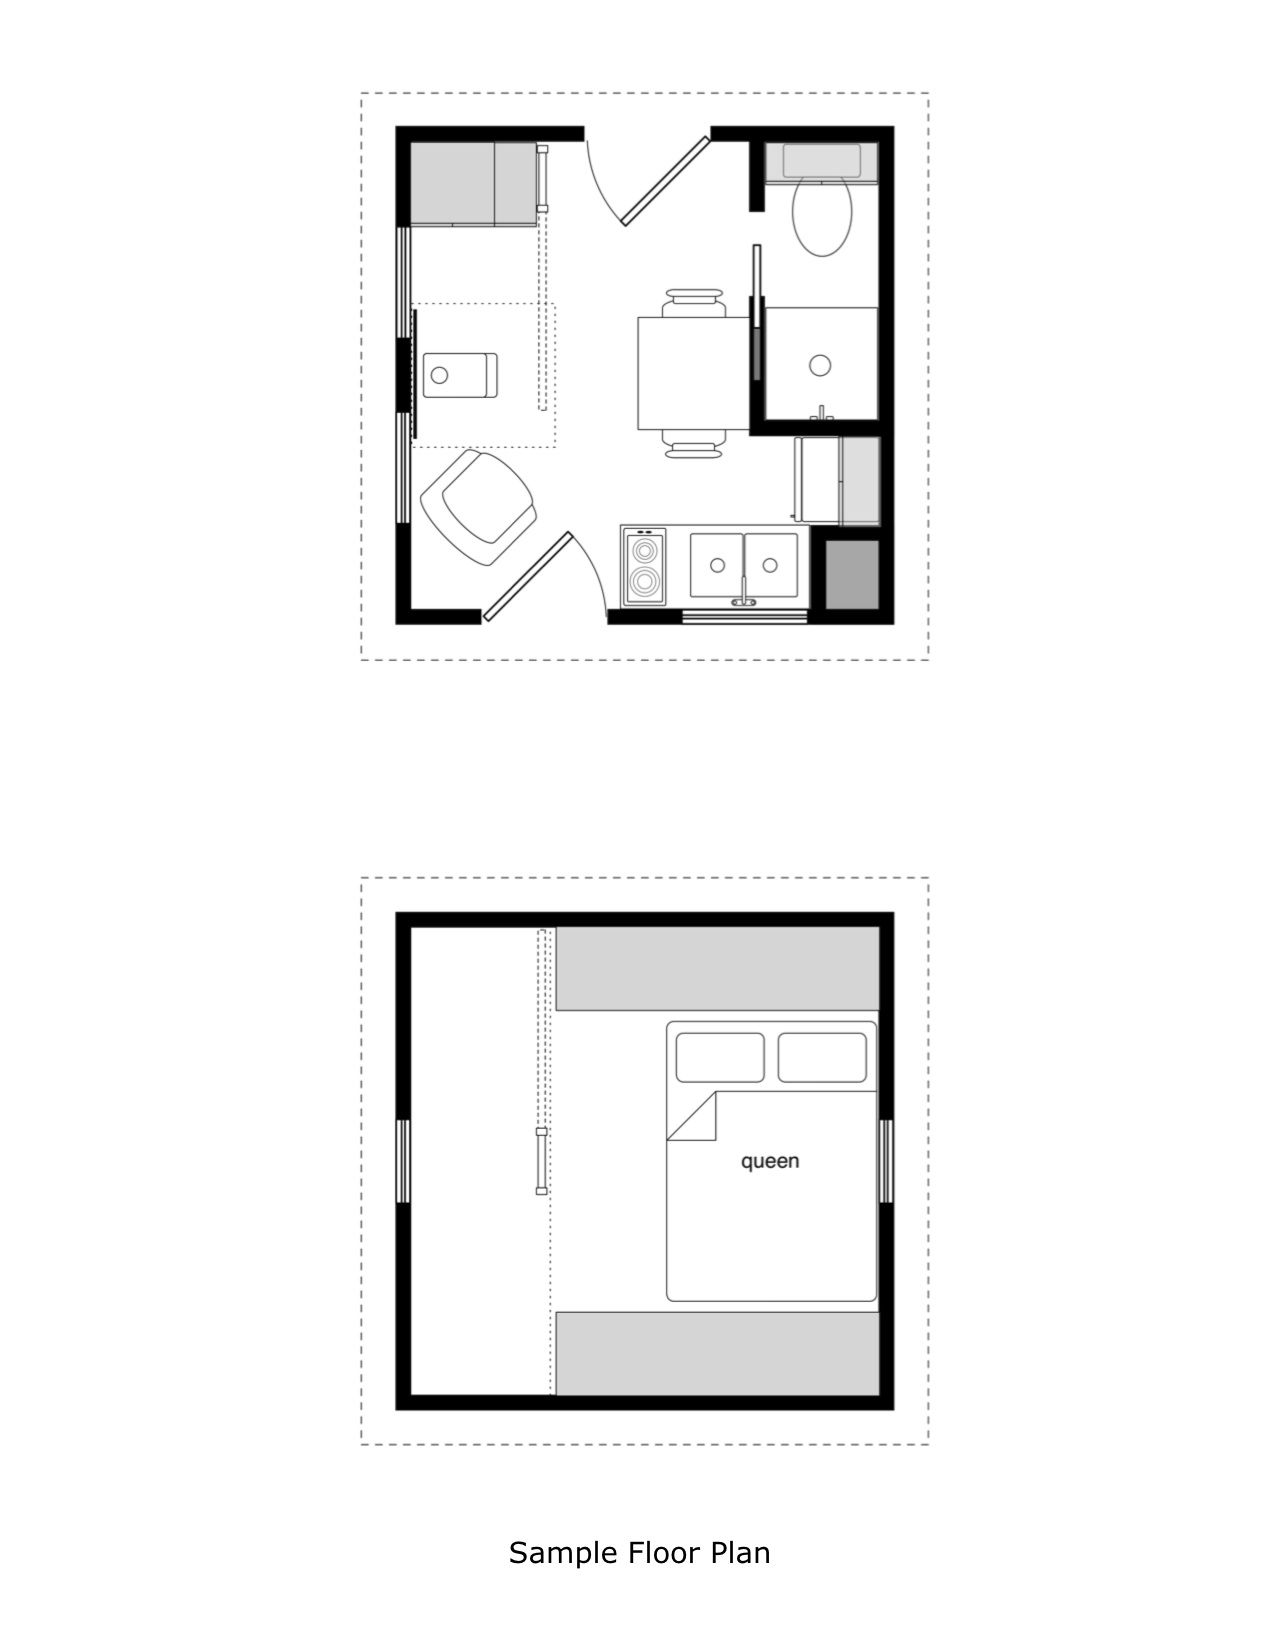 Prospector S Cabin 12x12 Floor Plan Tiny House Floor Plans Tiny Cabin Plans House Floor Plans